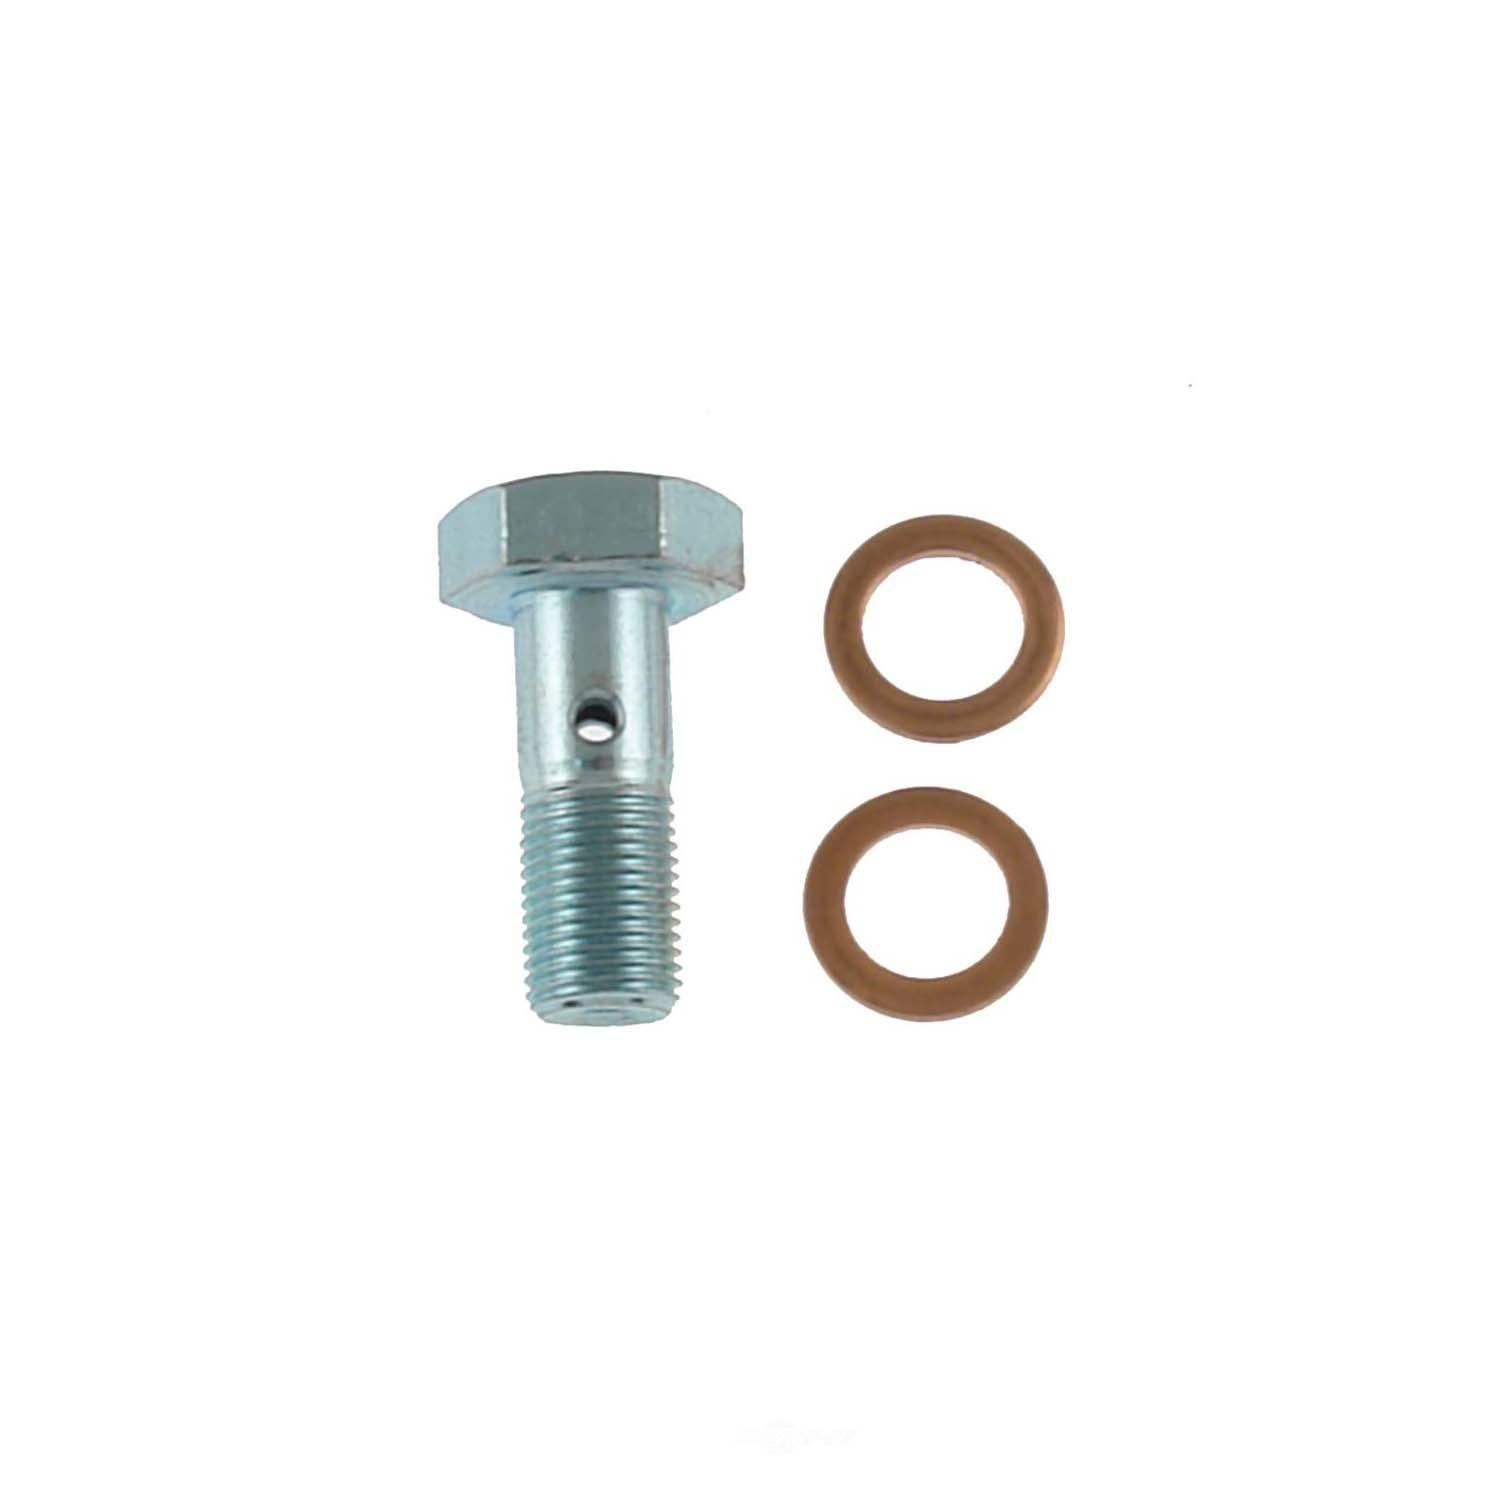 CARLSON QUALITY BRAKE PARTS - Brake Hydraulic Banjo Bolt - CRL H9487-2